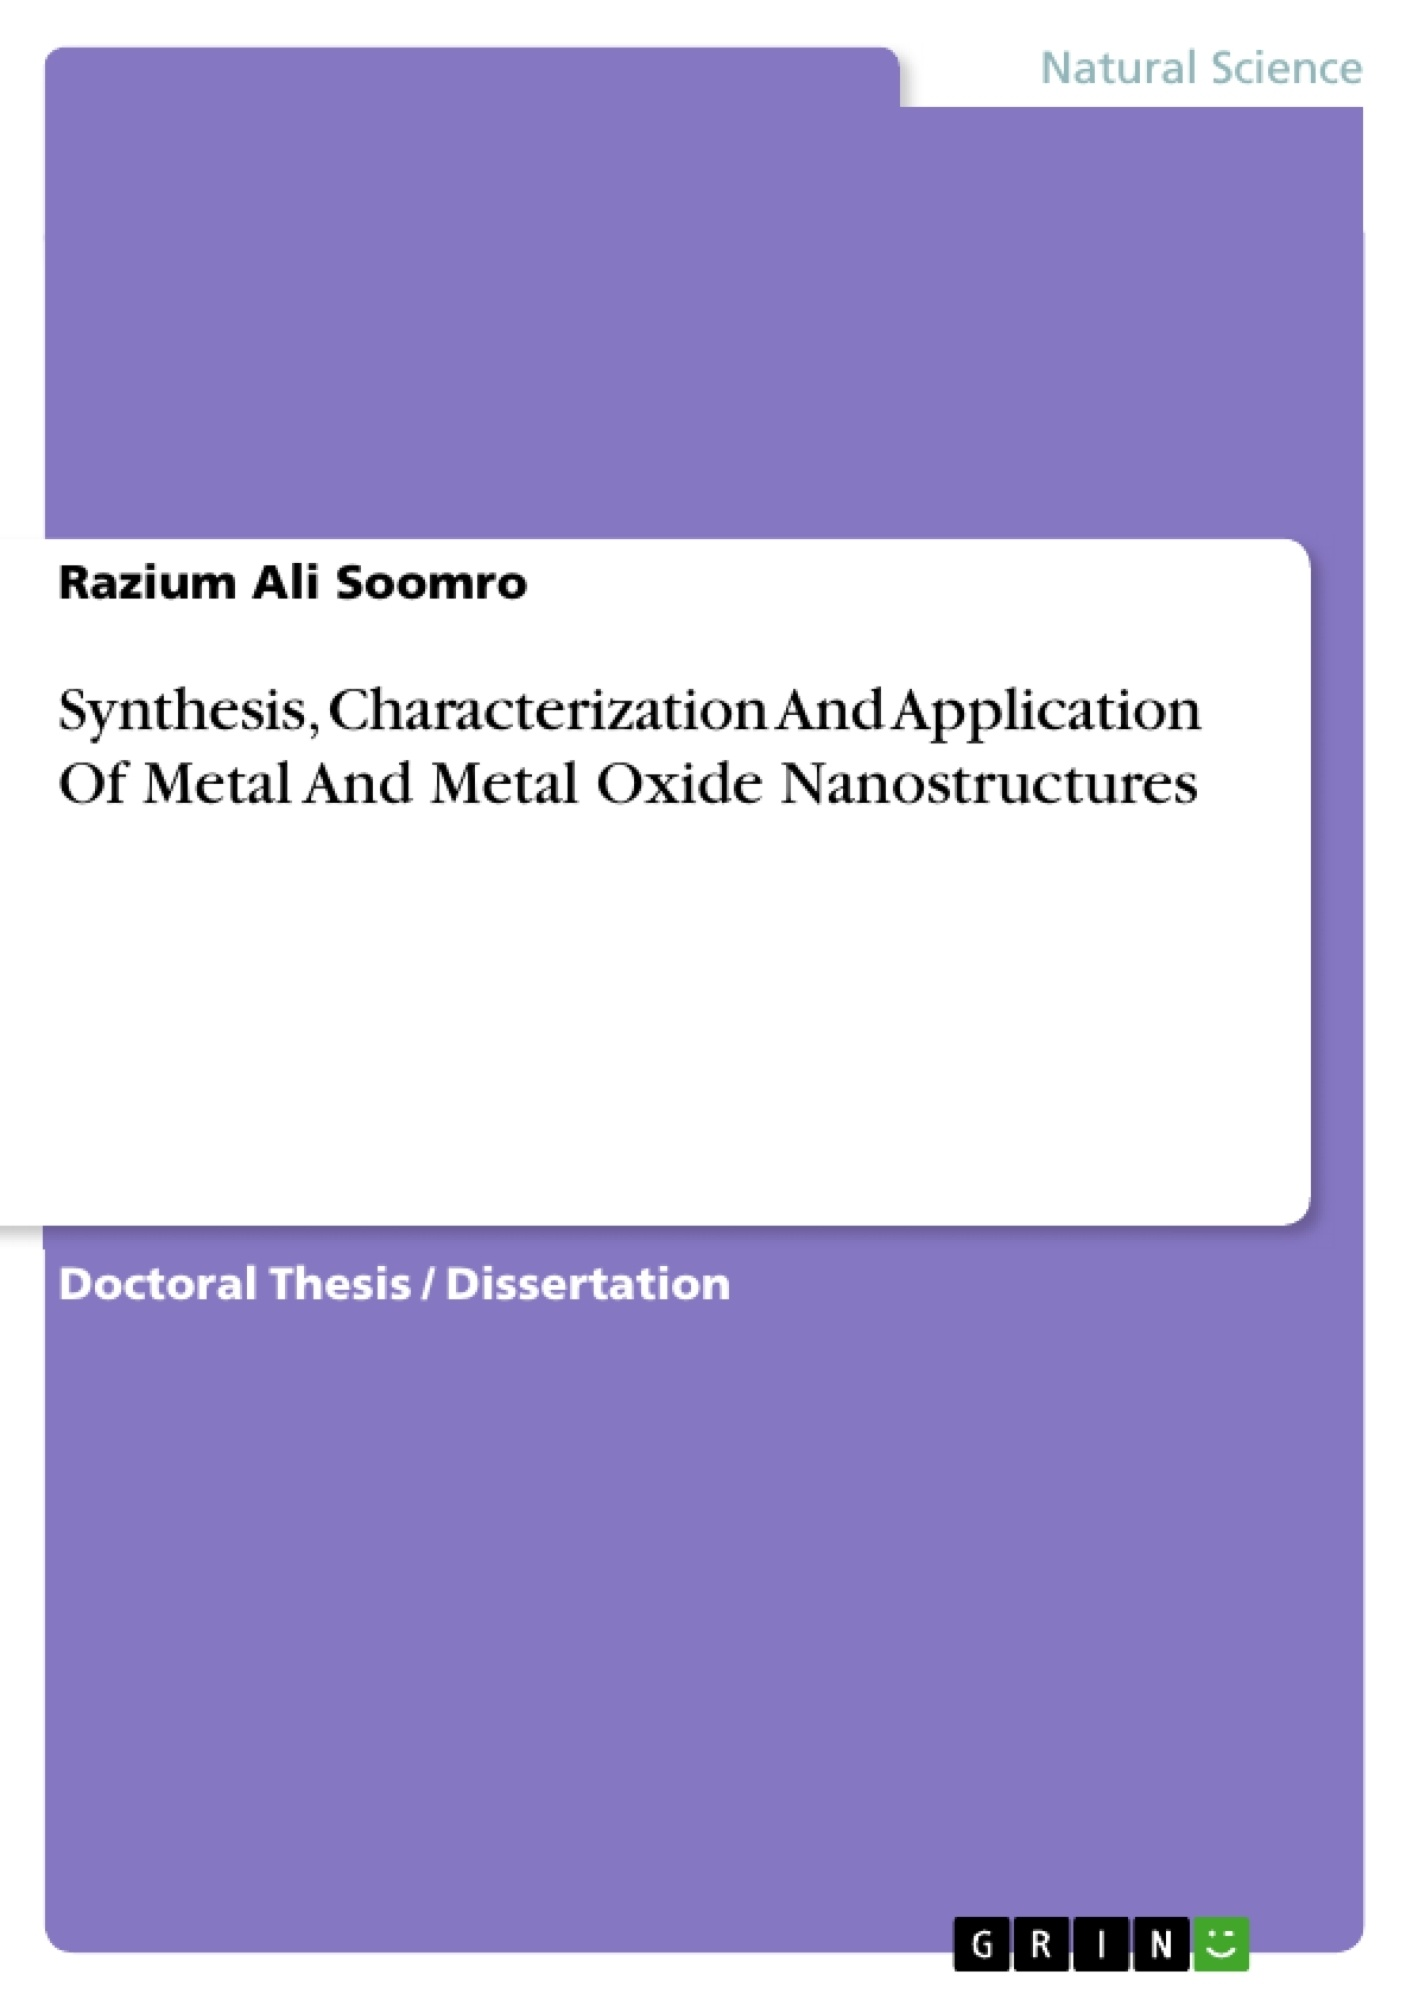 Title: Synthesis, Characterization And Application Of Metal And Metal Oxide Nanostructures